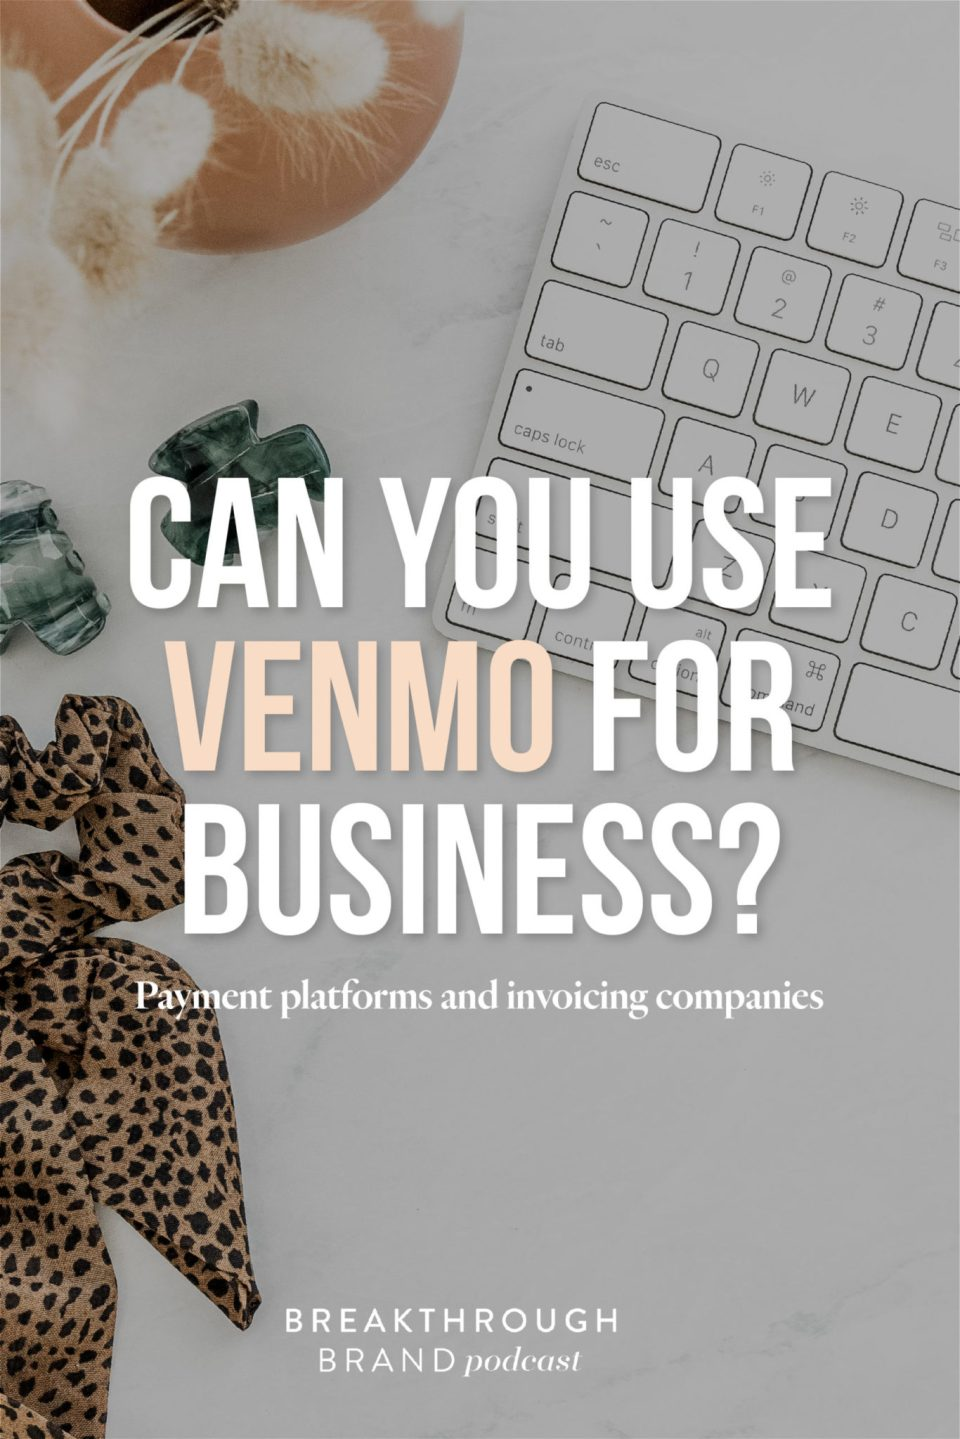 Don't use apps like Venmo and Cash App to avoid processing fees when accepting money in your business.